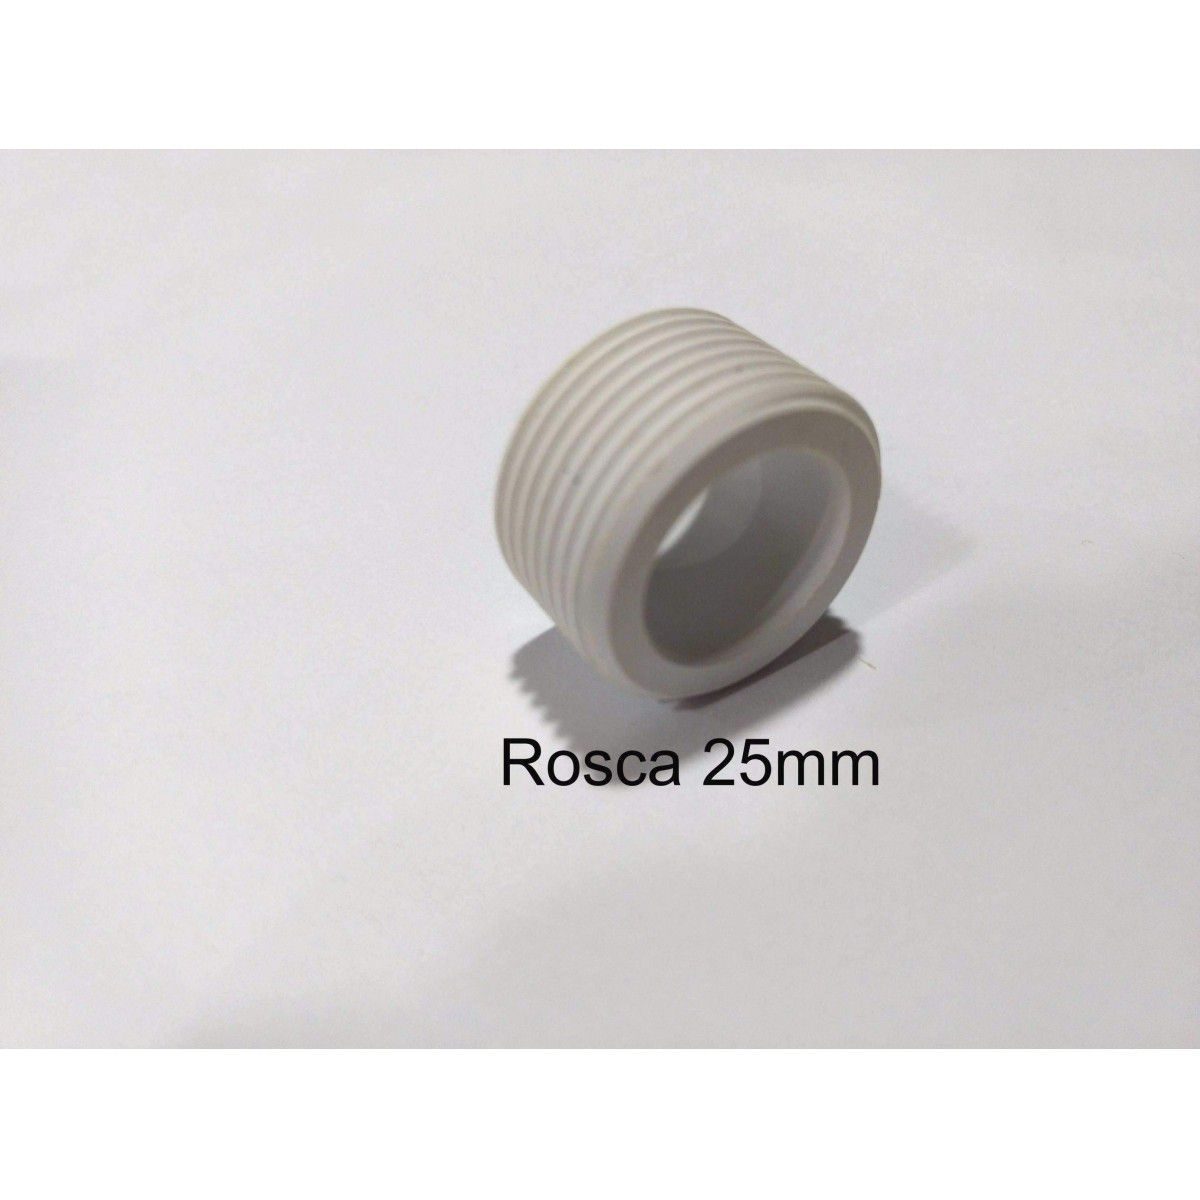 Adaptador para Leds Tec Light e Light Tech - Rosca de 25mm